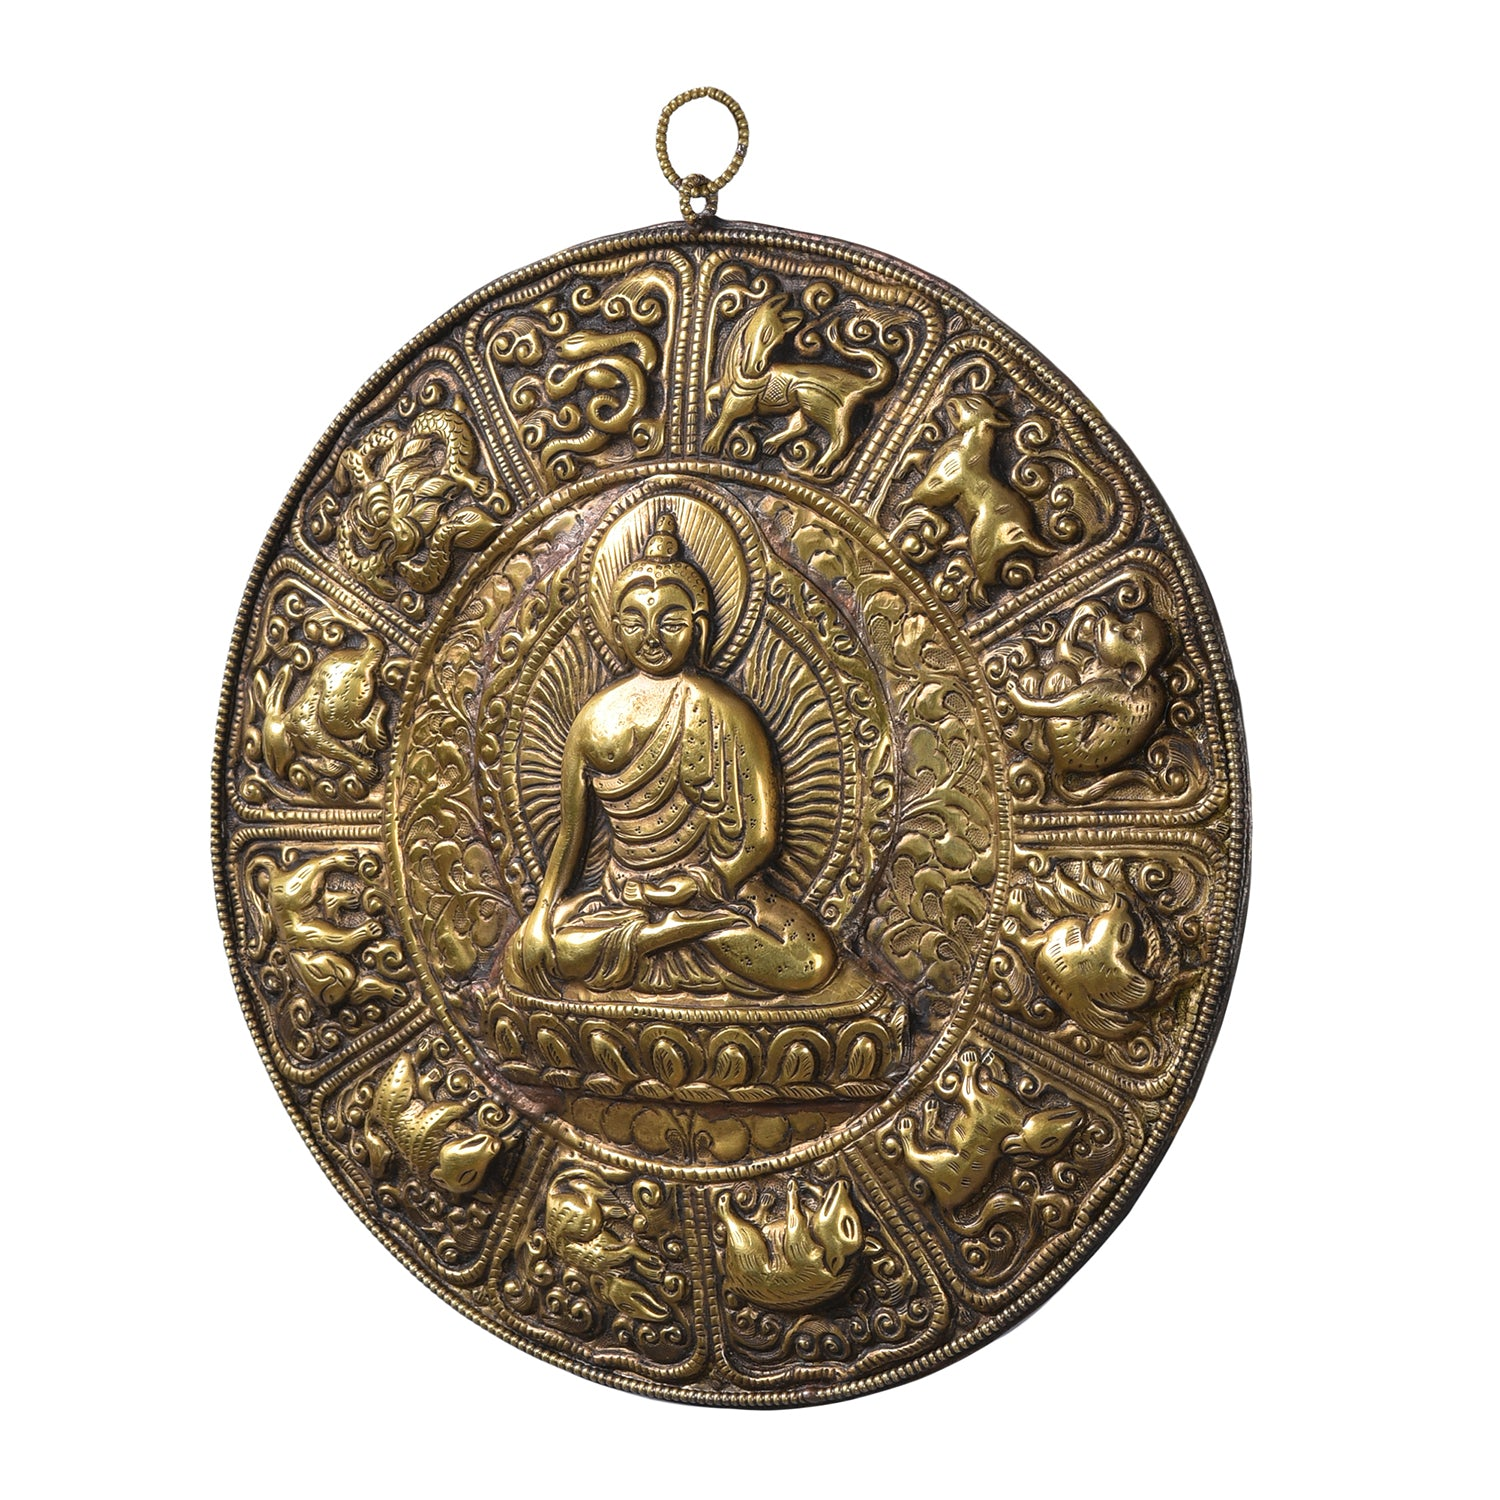 The Buddhist Calendar - Handcarved Wall Decor (Buddha)